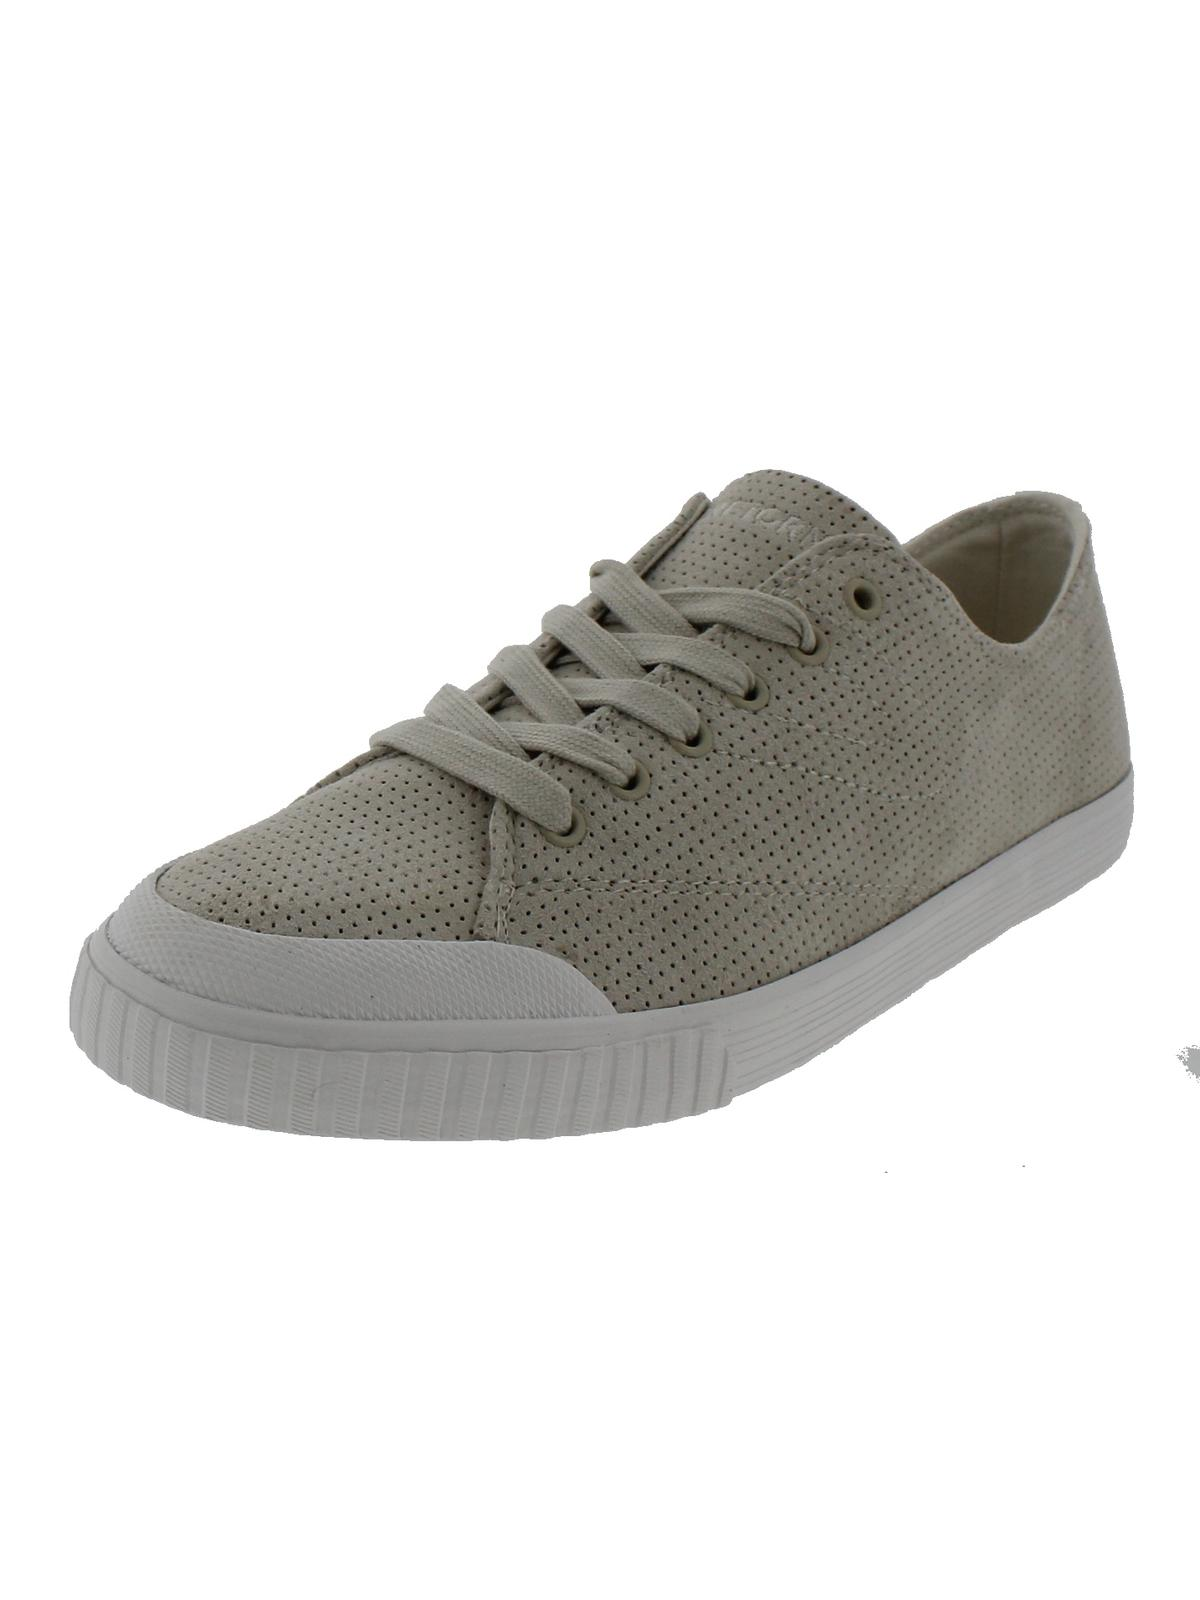 Tretorn Womens Suede Perforated Casual Shoes Beige 10 Medium (B,M) by Tretorn